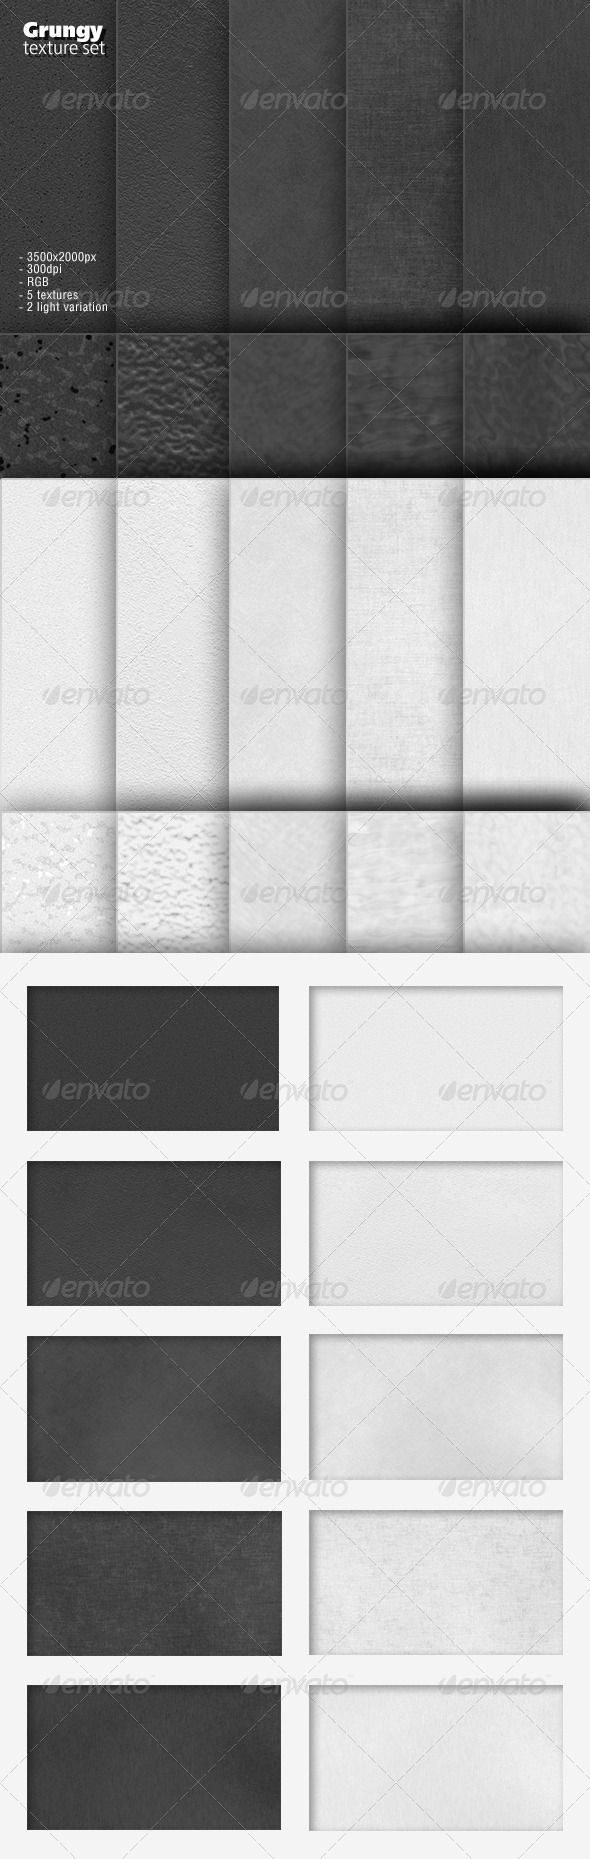 Texture Set - Abstract Backgrounds